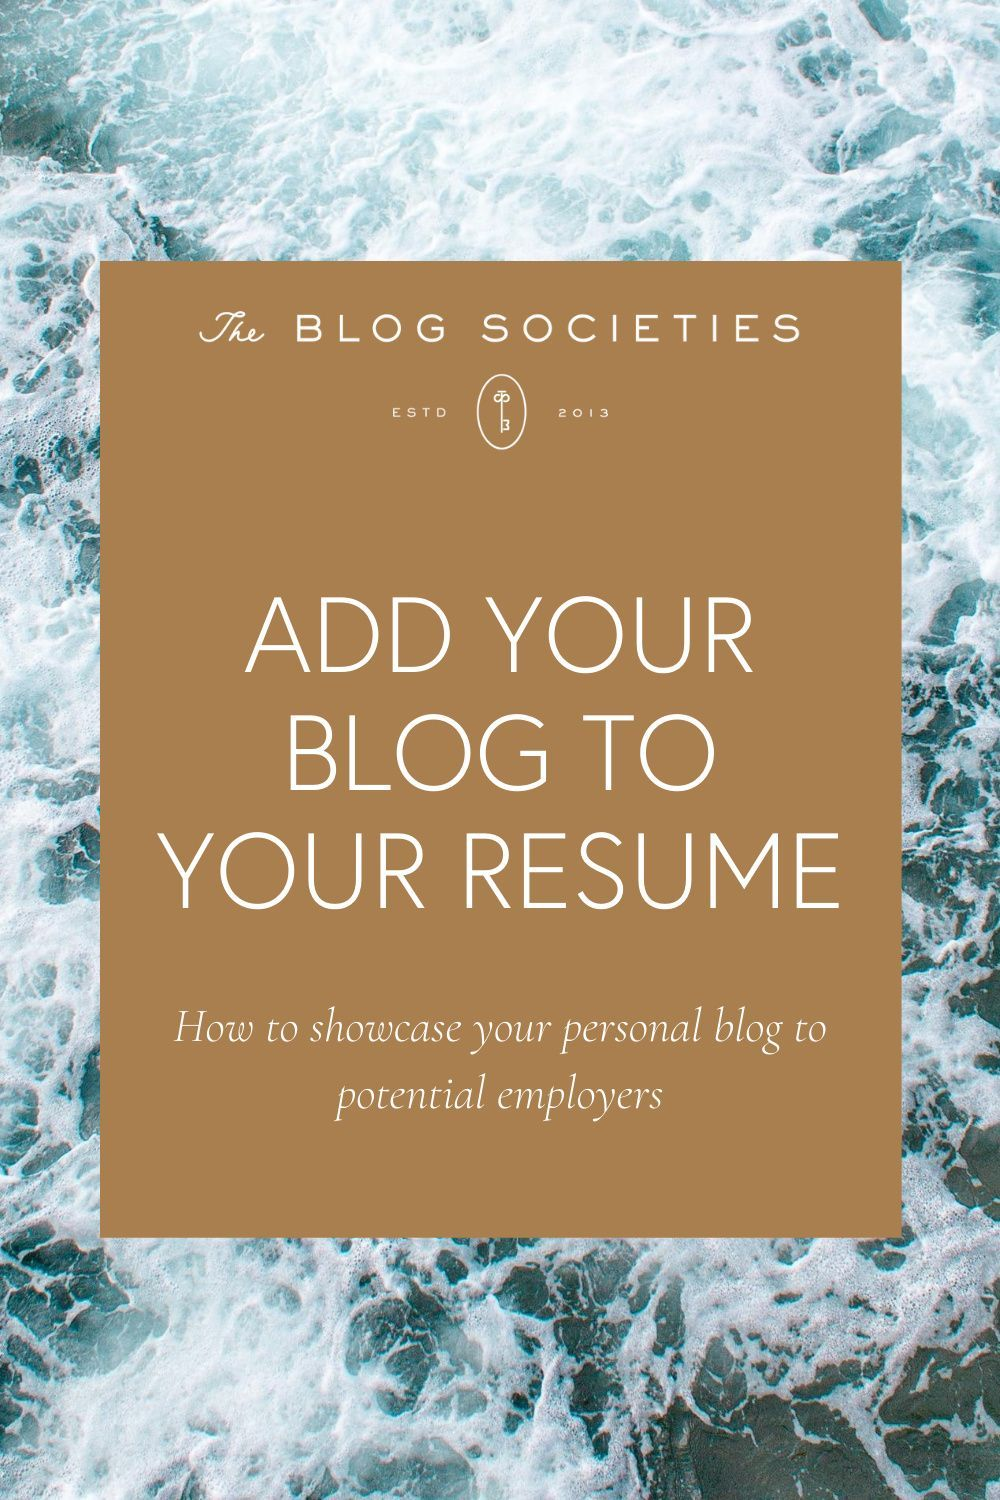 How To Add Your Blog To Your Resume The Blog Societies